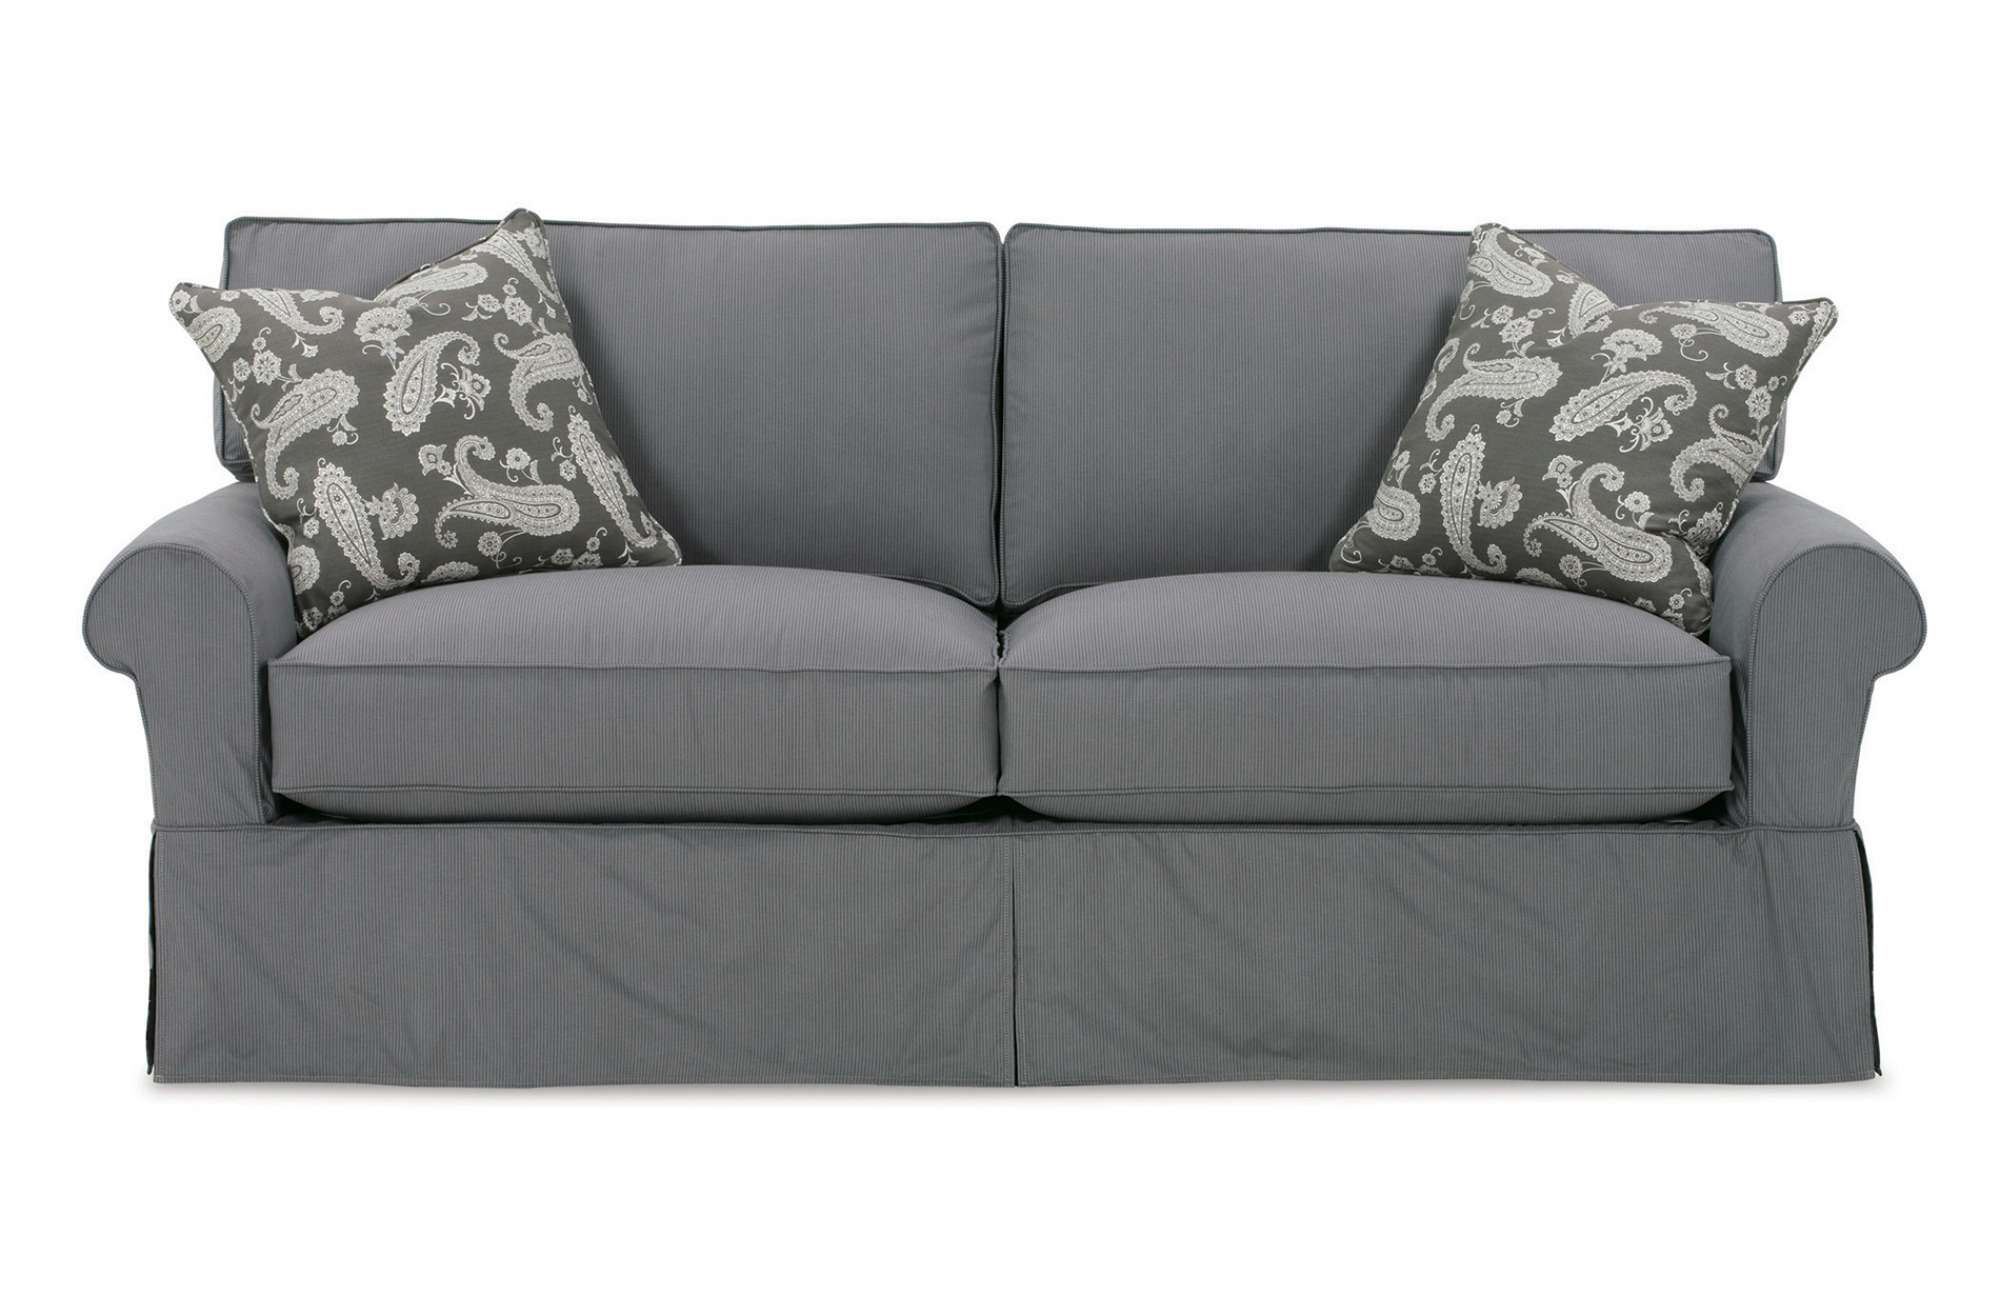 The Nantucket 2 Seat Slipcover Queen Sleeper Is A Modern Sofa Bed Design From Rowe Furniture